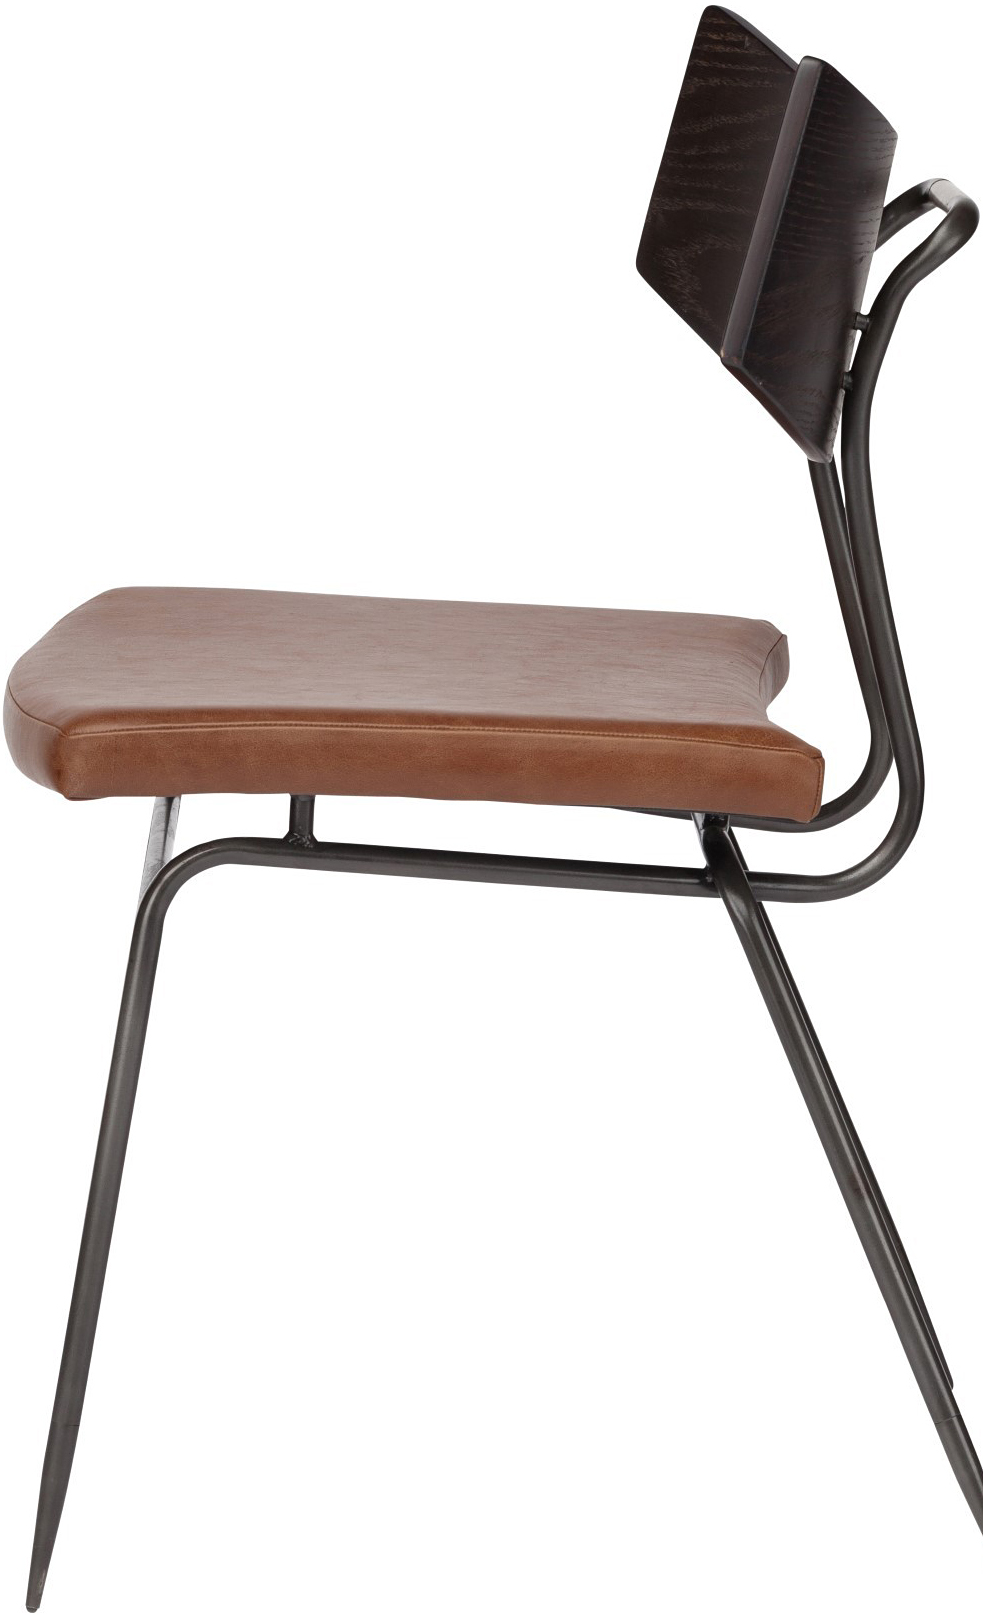 the nuevo soli dining chair caramel